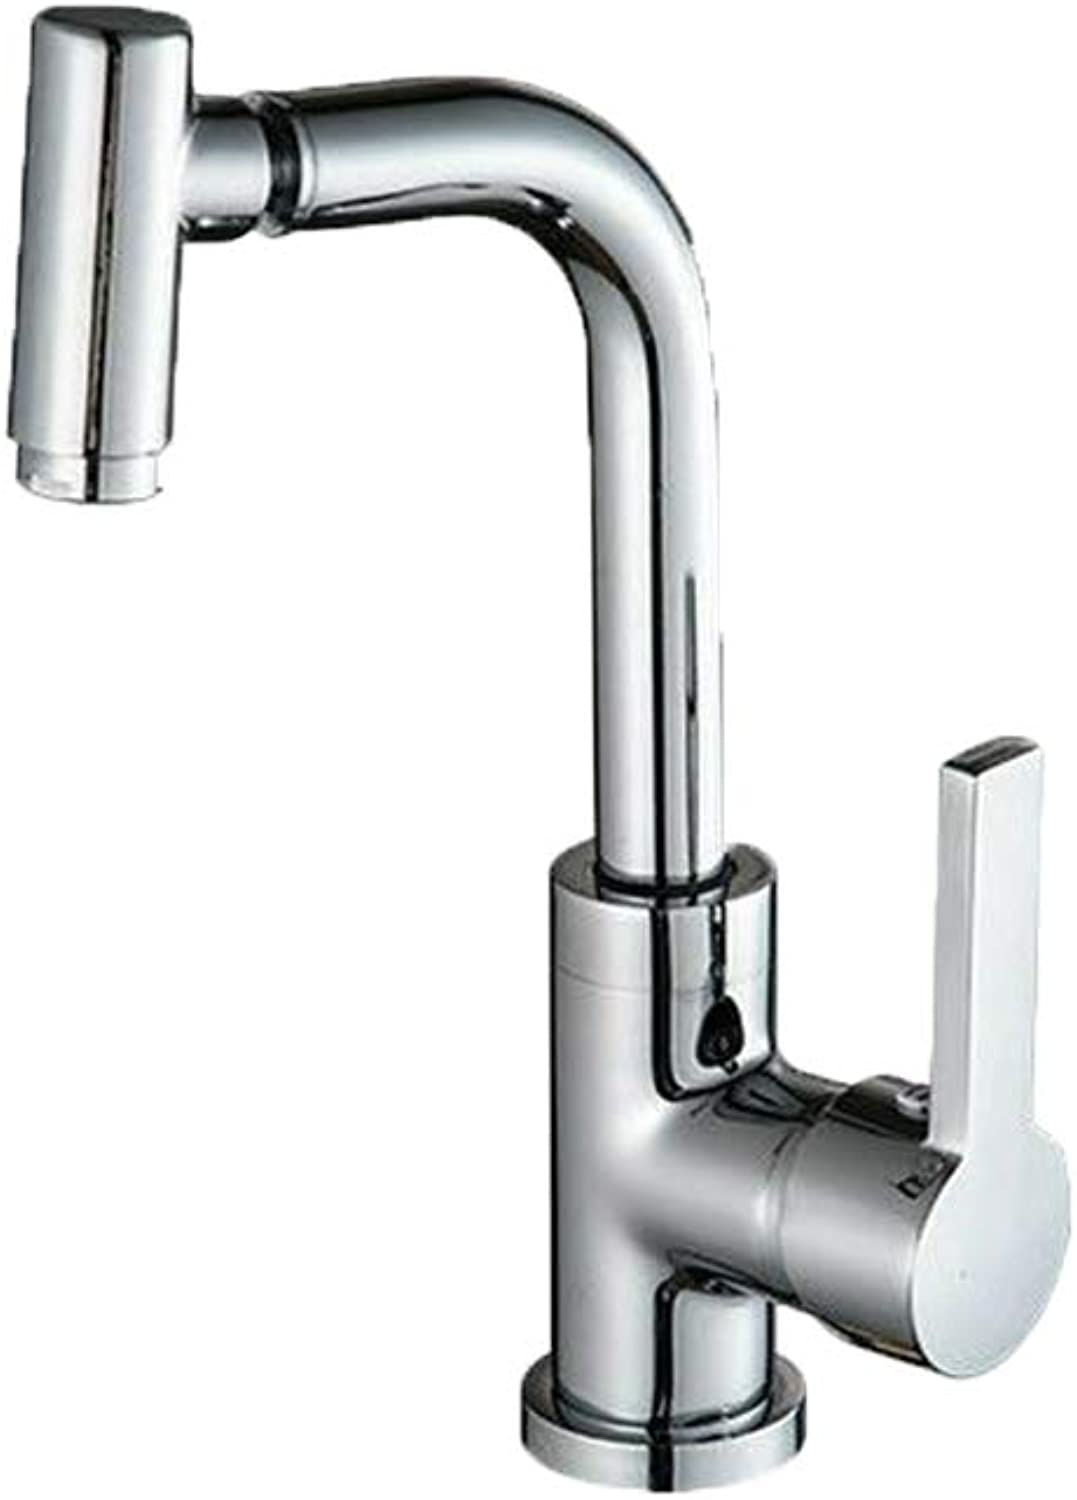 Glz Tap Faucet can redate Faucet hot and Cold Basin Faucet